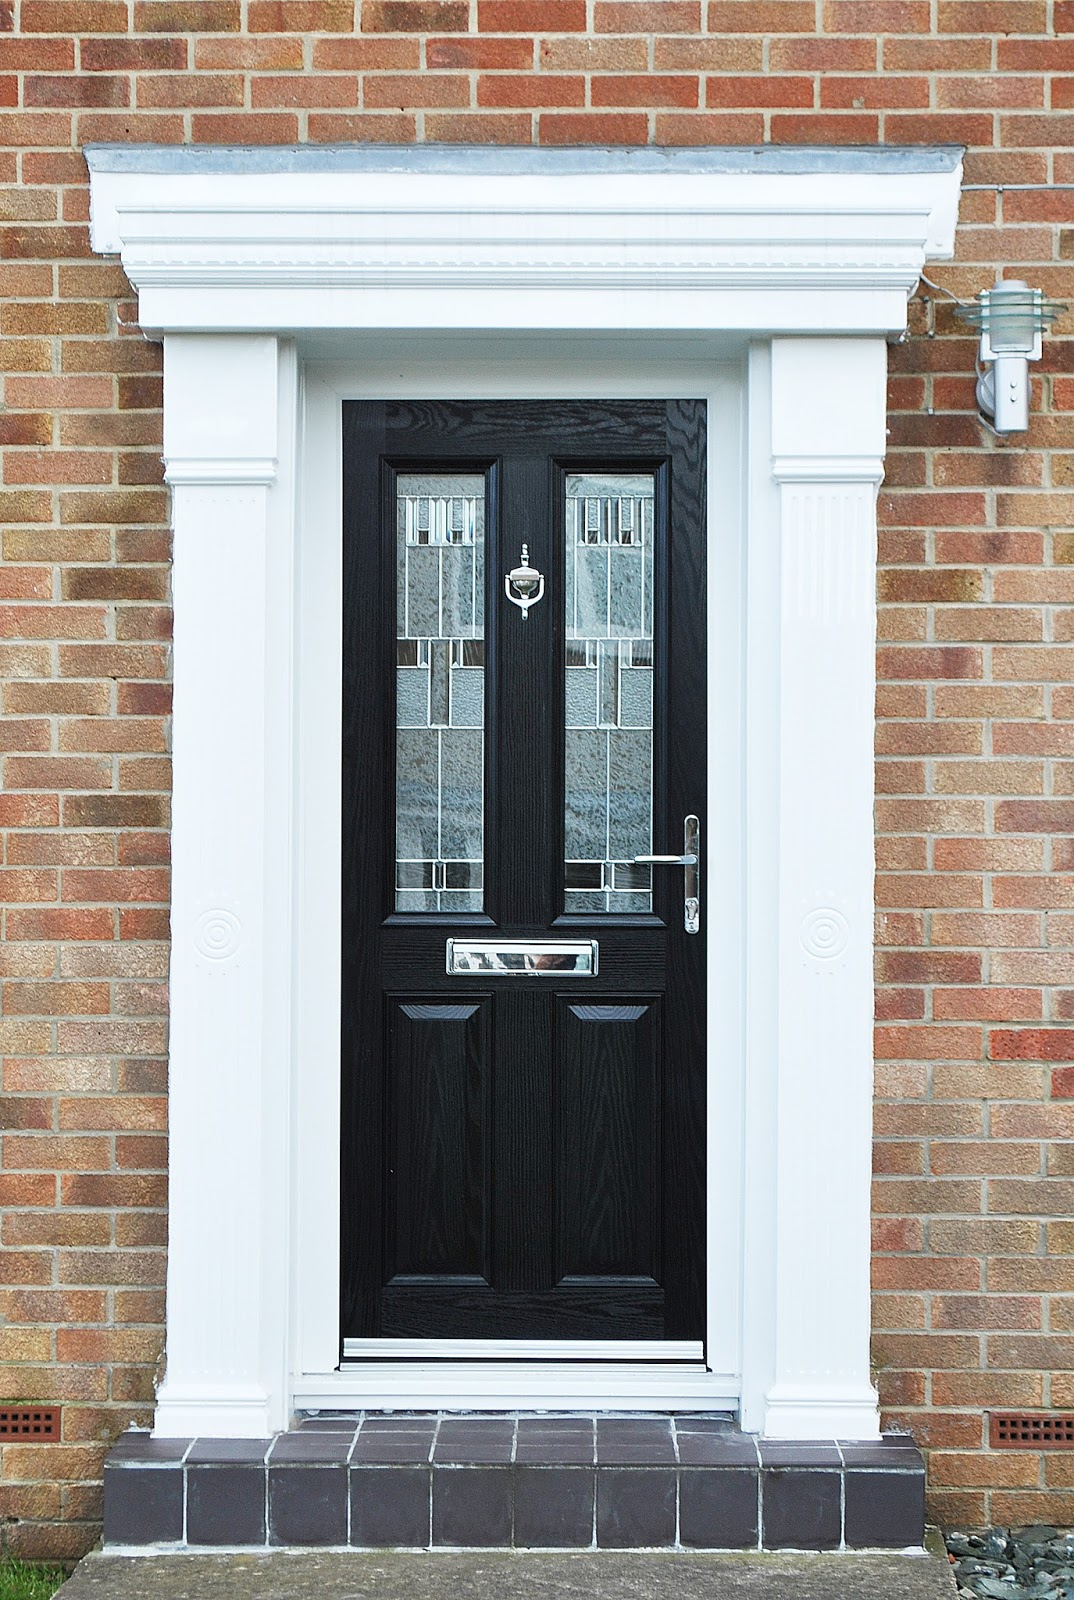 Our Beautiful Altmore Composite Door Design with Modern Zinc Prairie Glass finished off with Cambridge Canopy Surround & News Blog